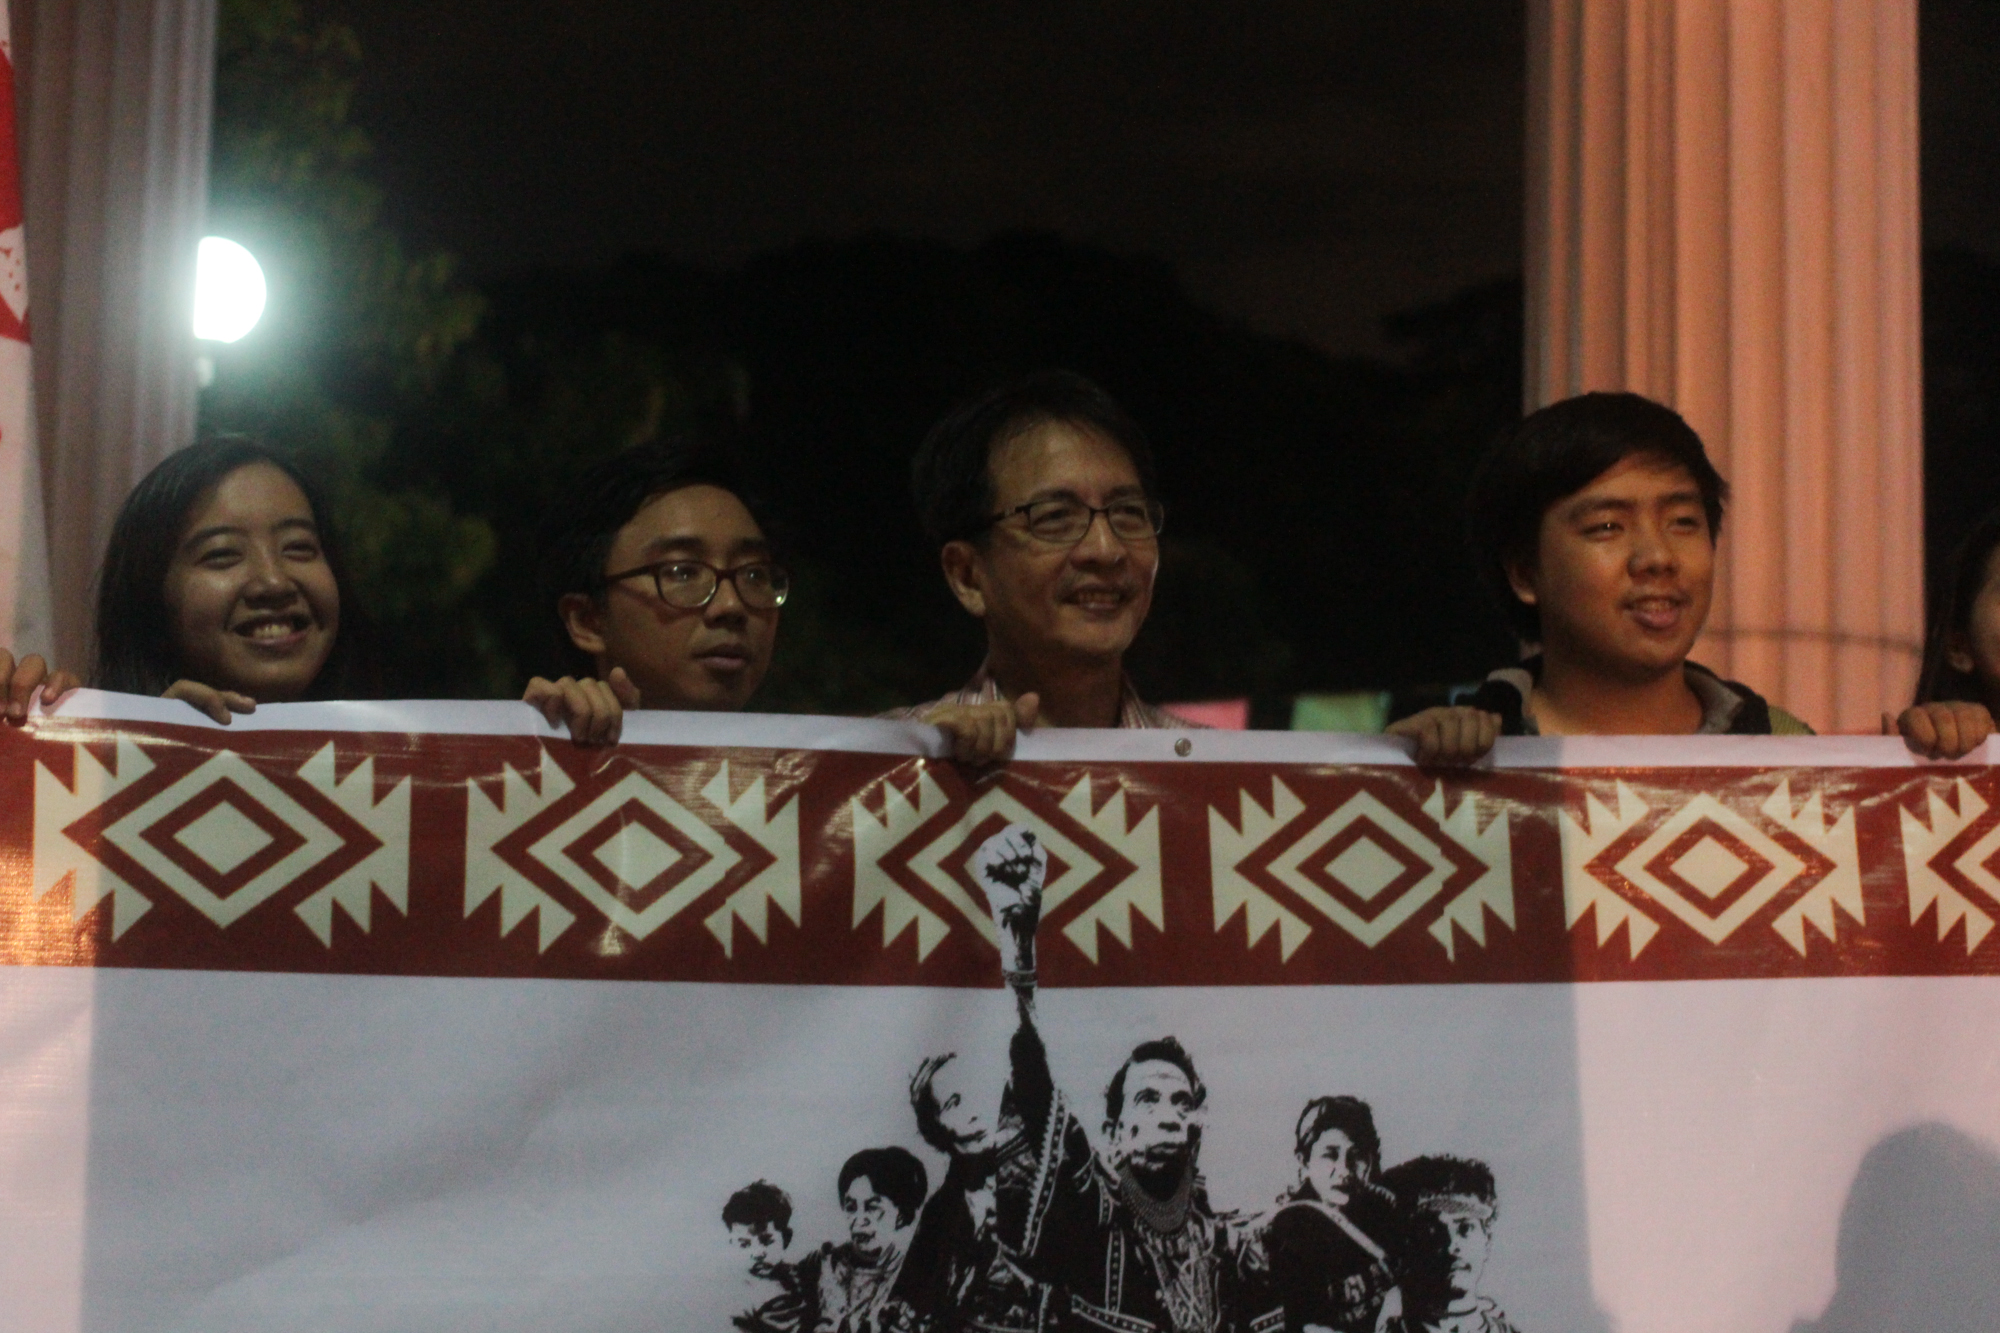 UP welcomes the Lakbayan northern contingent on Oct. 12. (Photo by Gino Estella/Bulatlat)